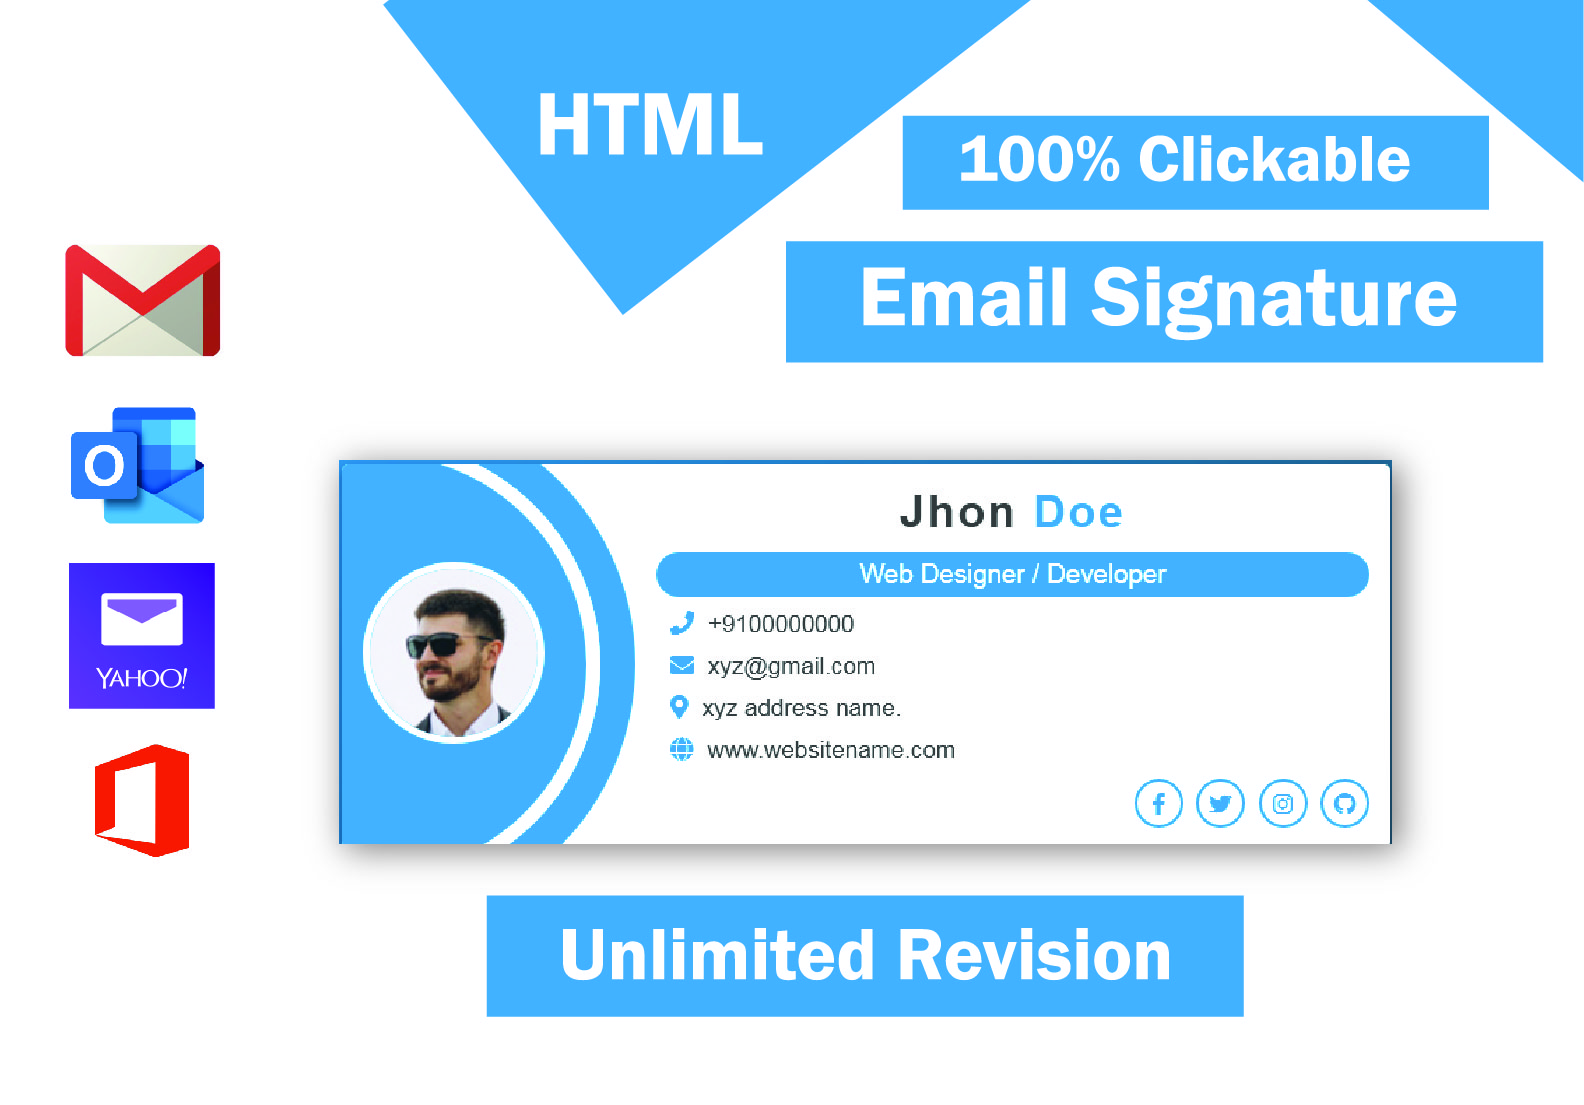 I will design email signature in HTML,  clickable email signature